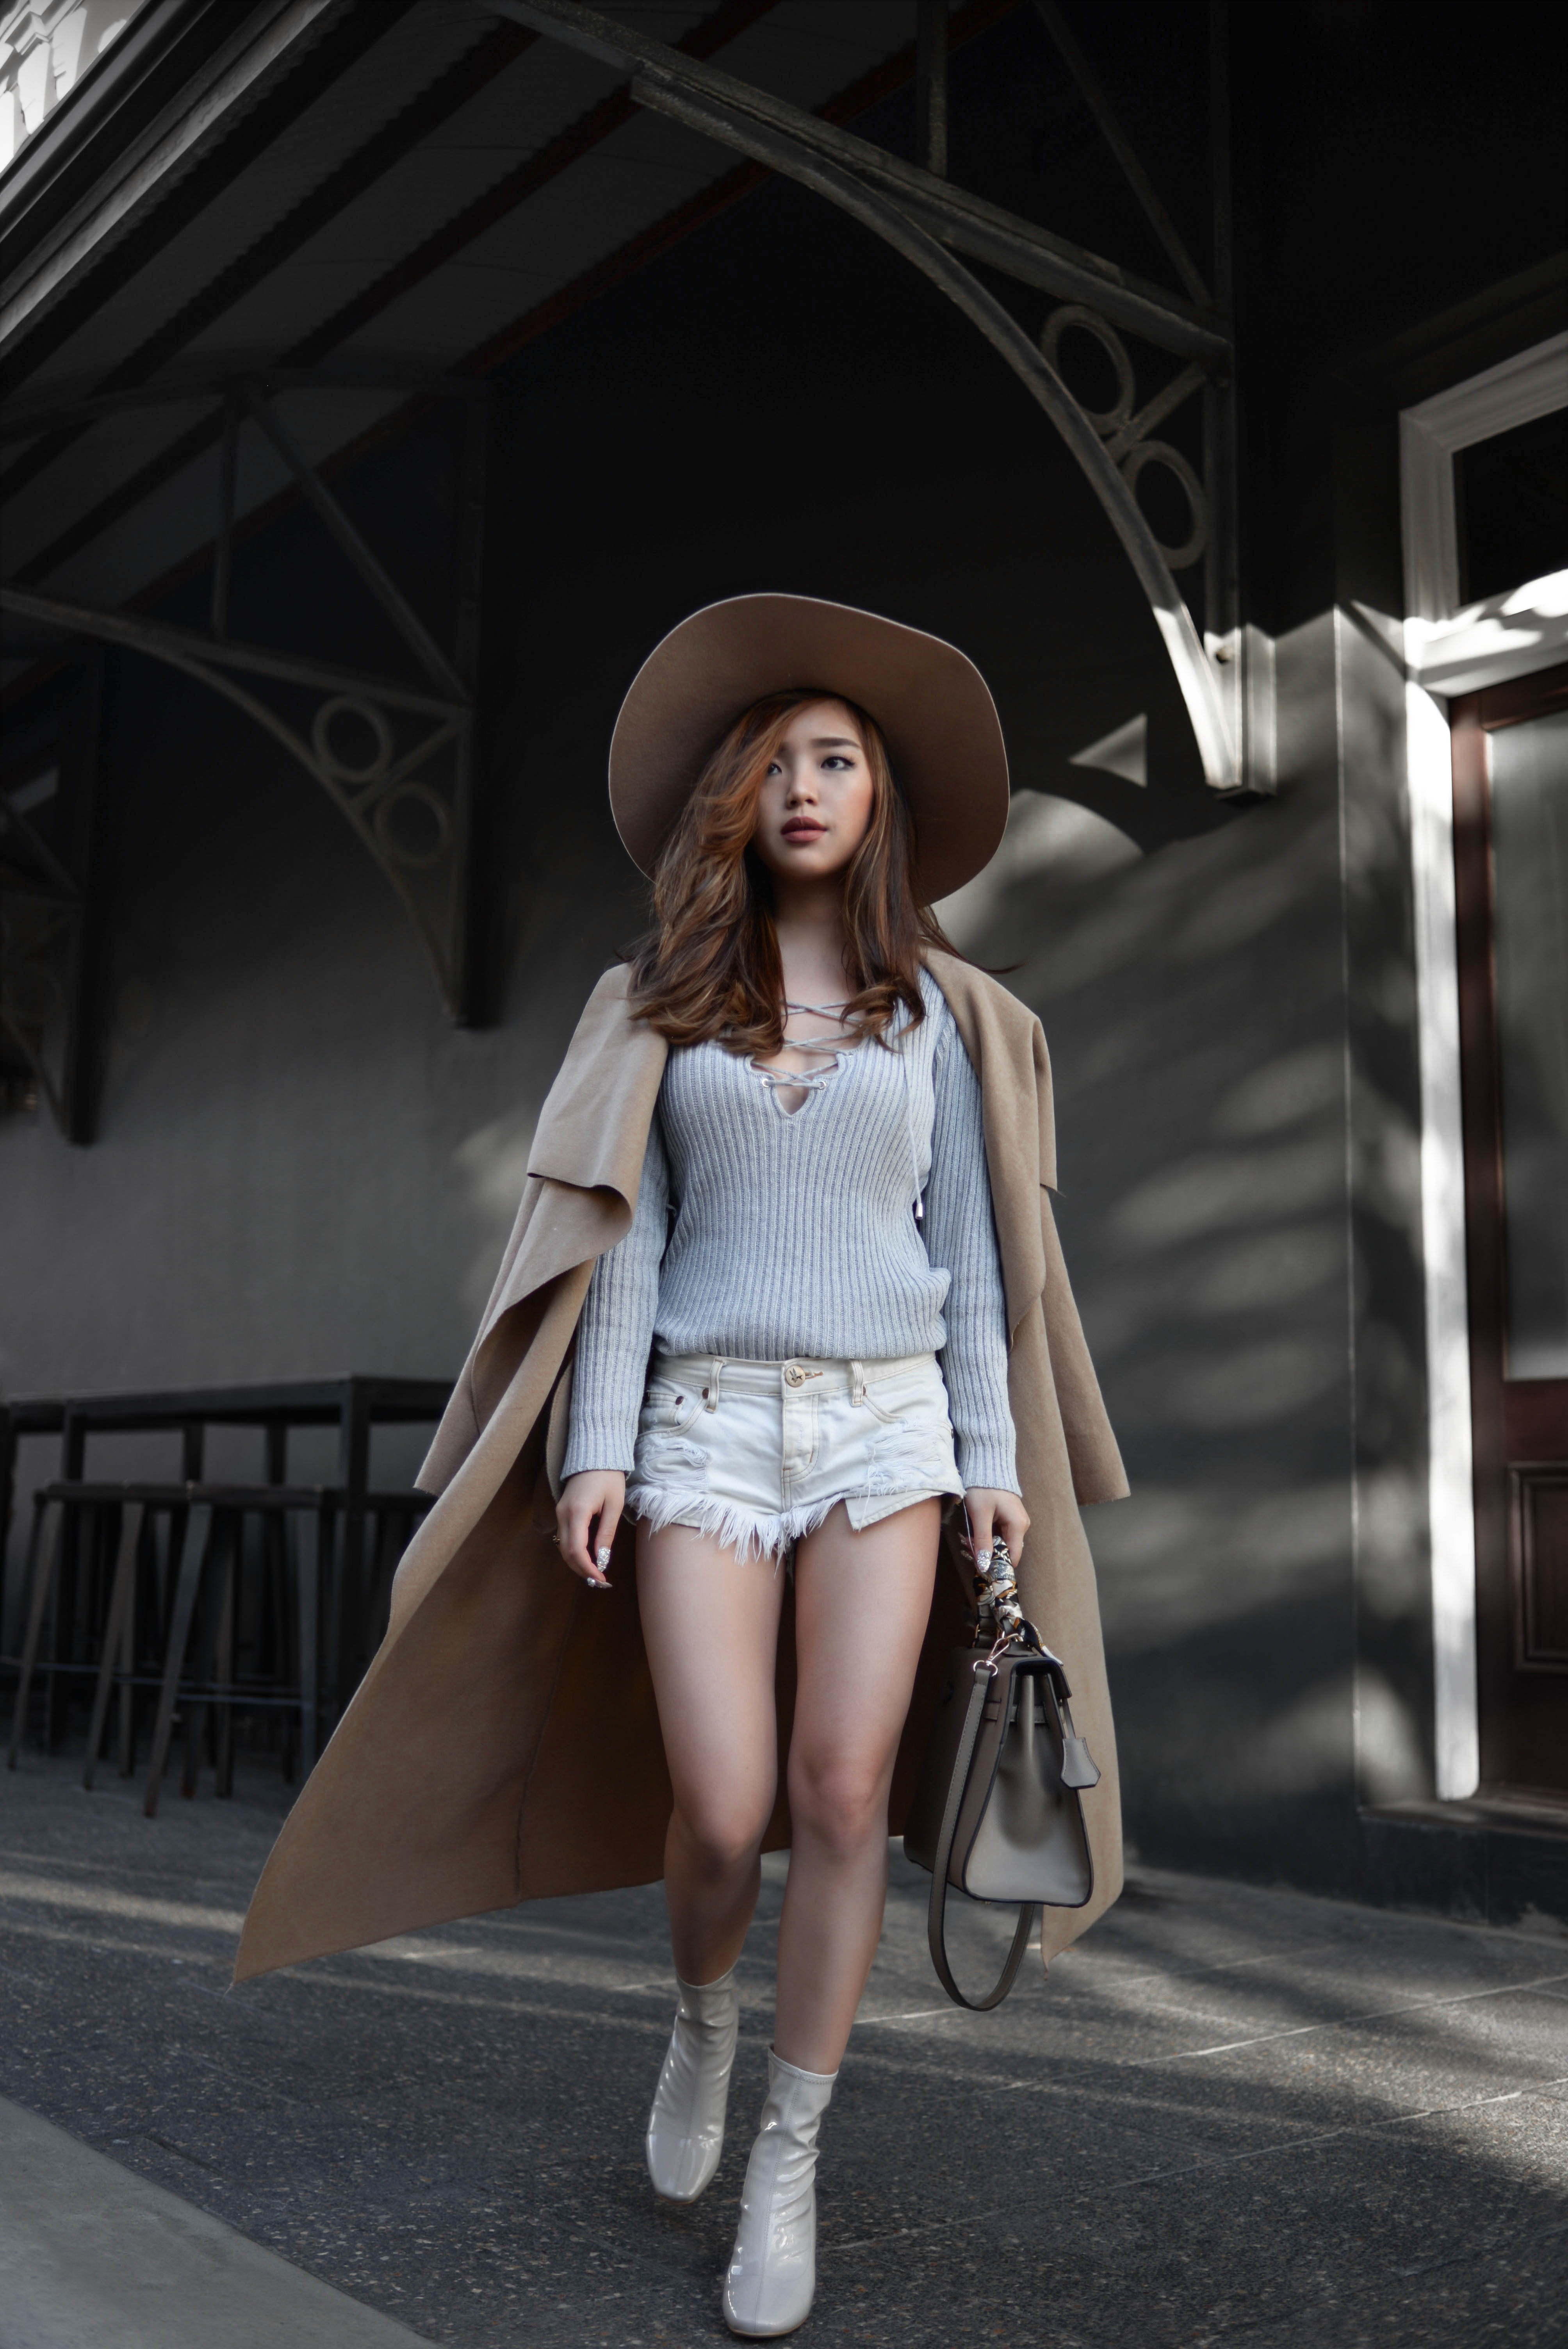 Denim Junkie Pale Division By Willabelle Ong Singapore 39 S Fashion Beauty And Travel Blogger